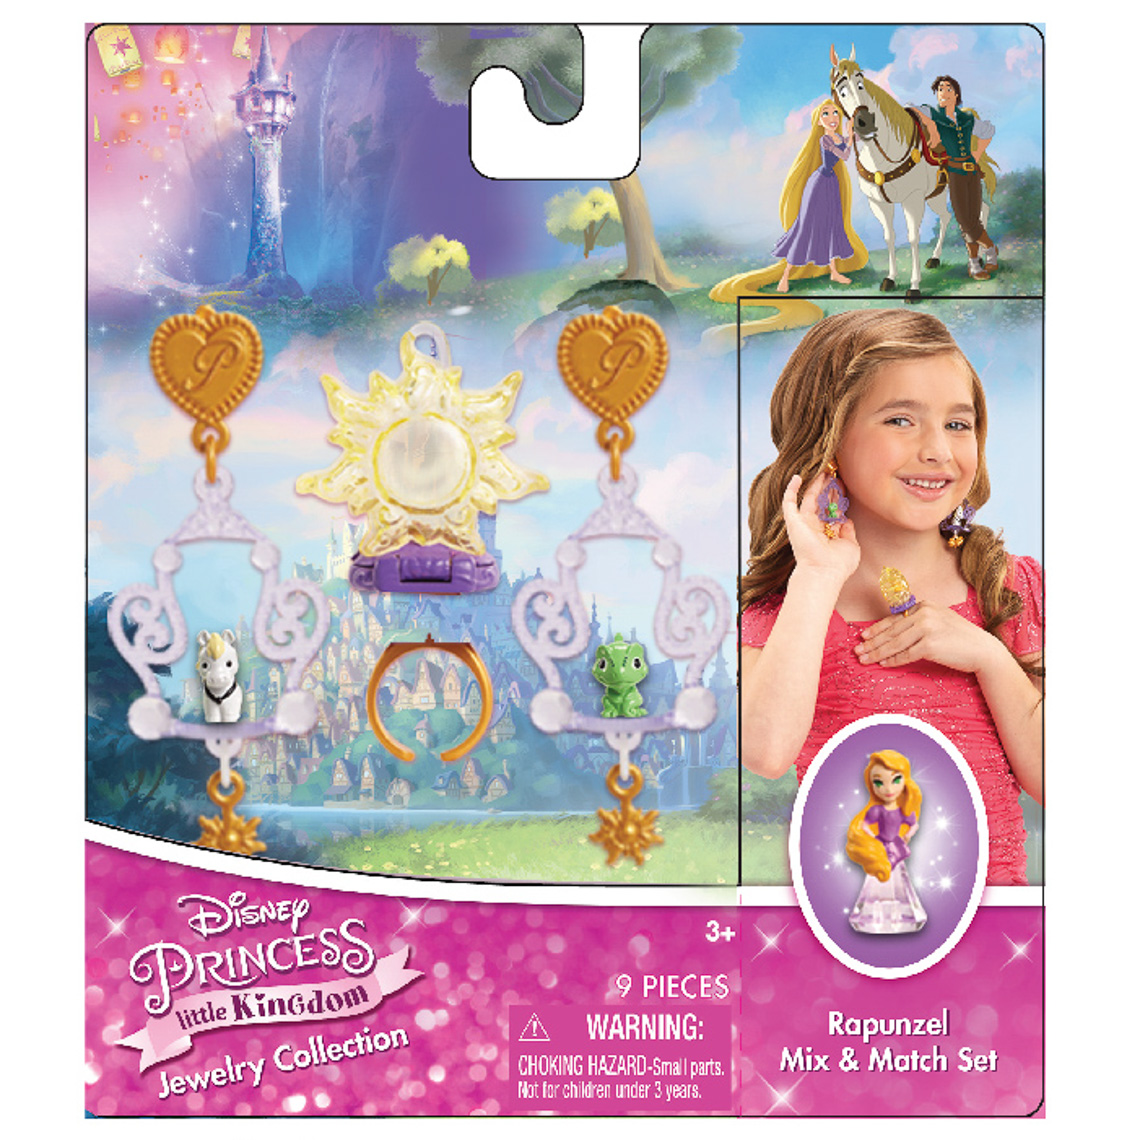 91479_Rapunzel_JewelrySet_F16_cs6_R2